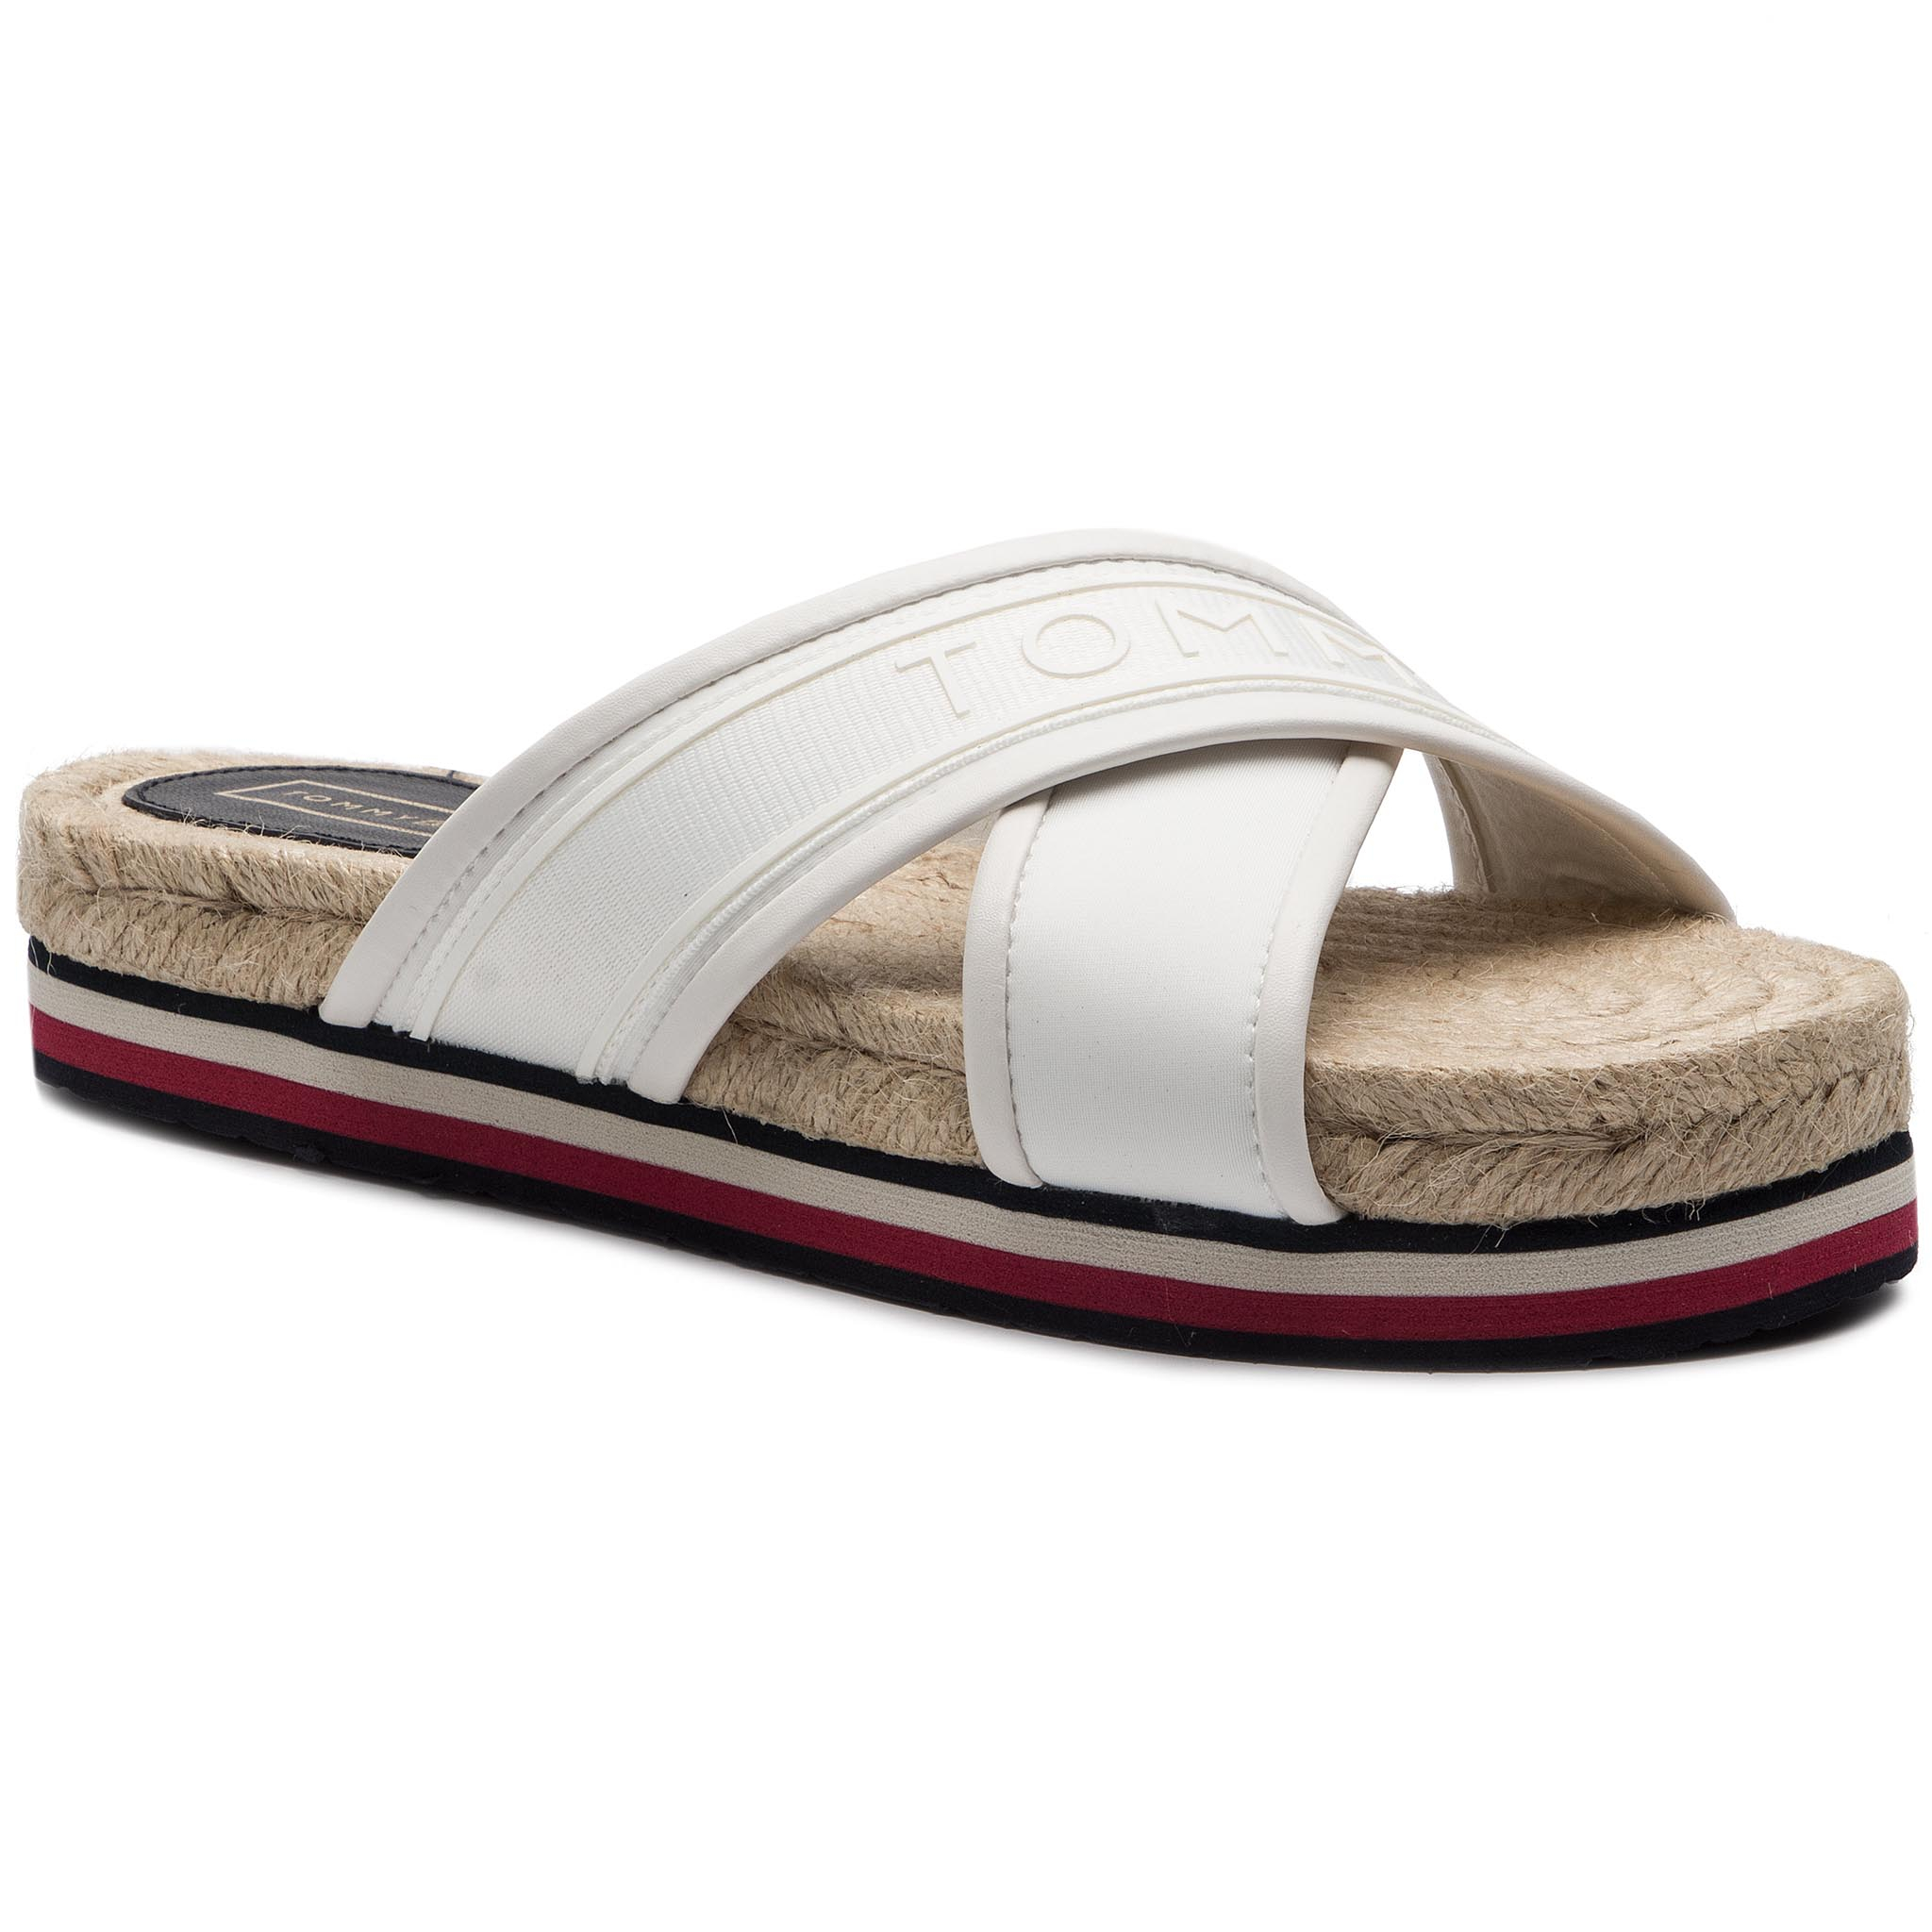 Espadrile TOMMY HILFIGER - Colorful Tommy Flat Sandal FW0FW04159 Whisper White 121